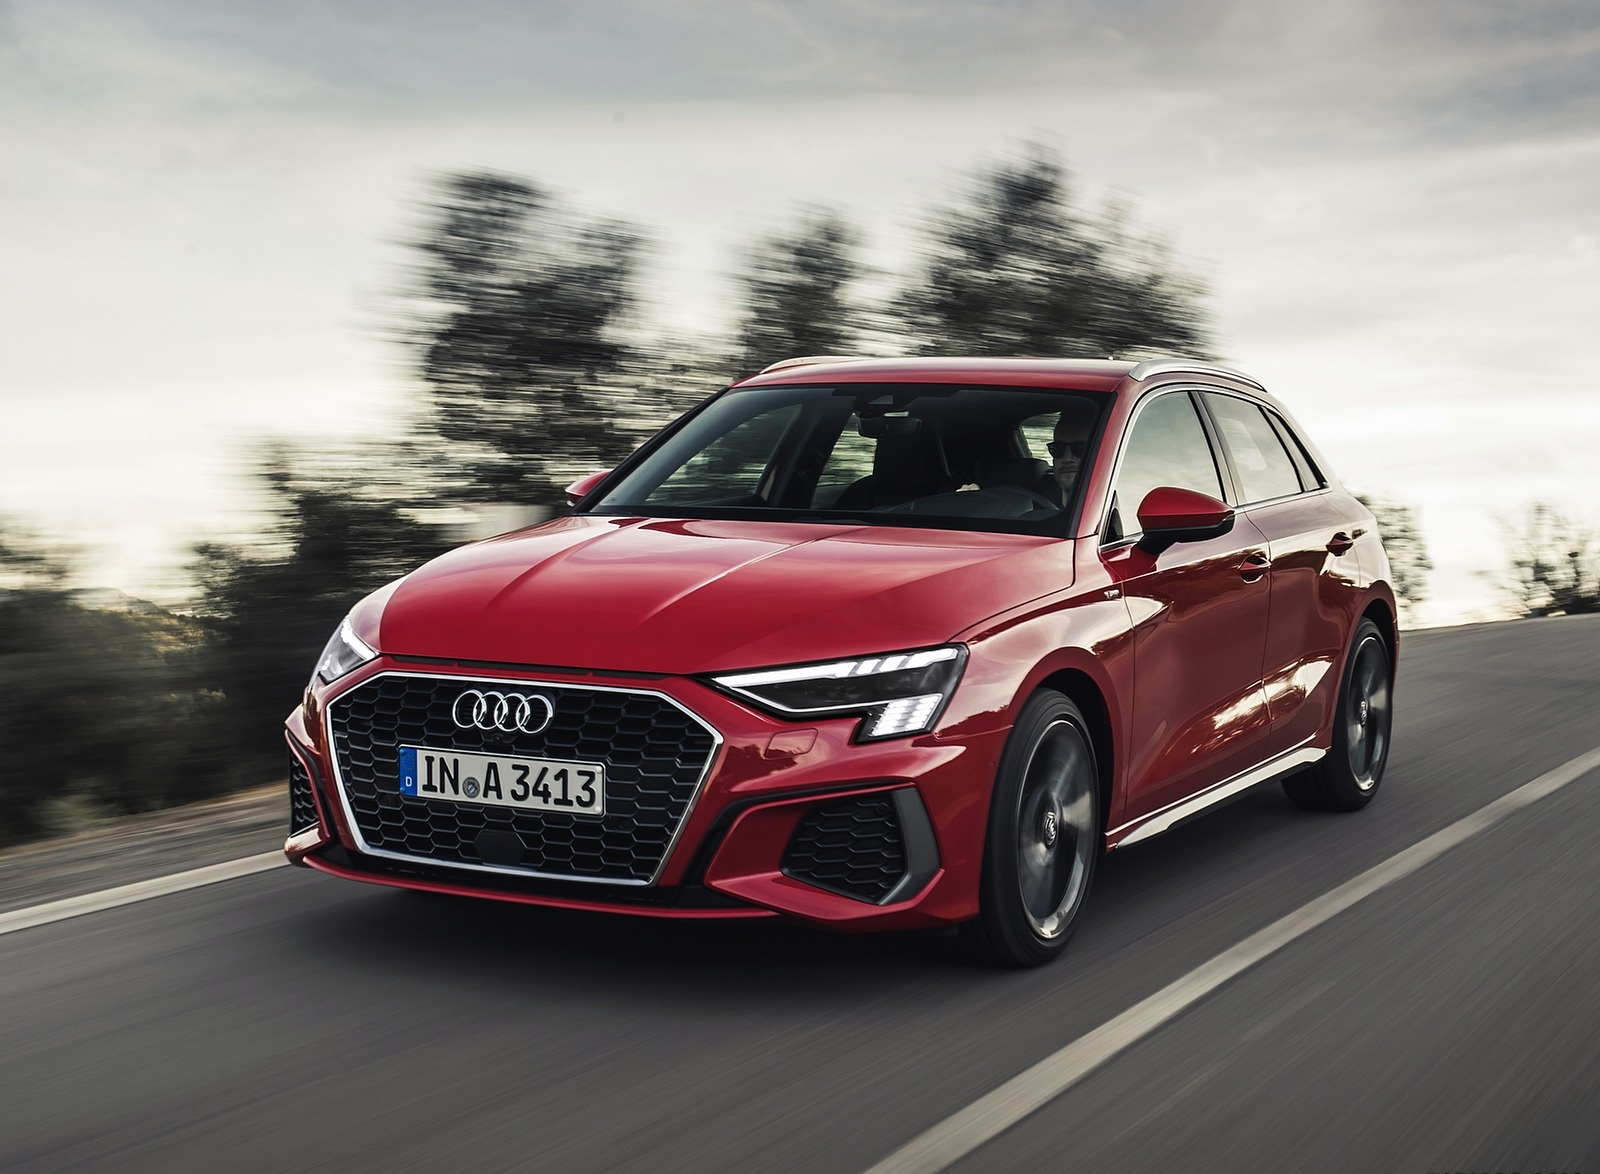 2021 Audi A3 Sportback (Color: Tango Red) Front Three-Quarter Wallpapers (2)